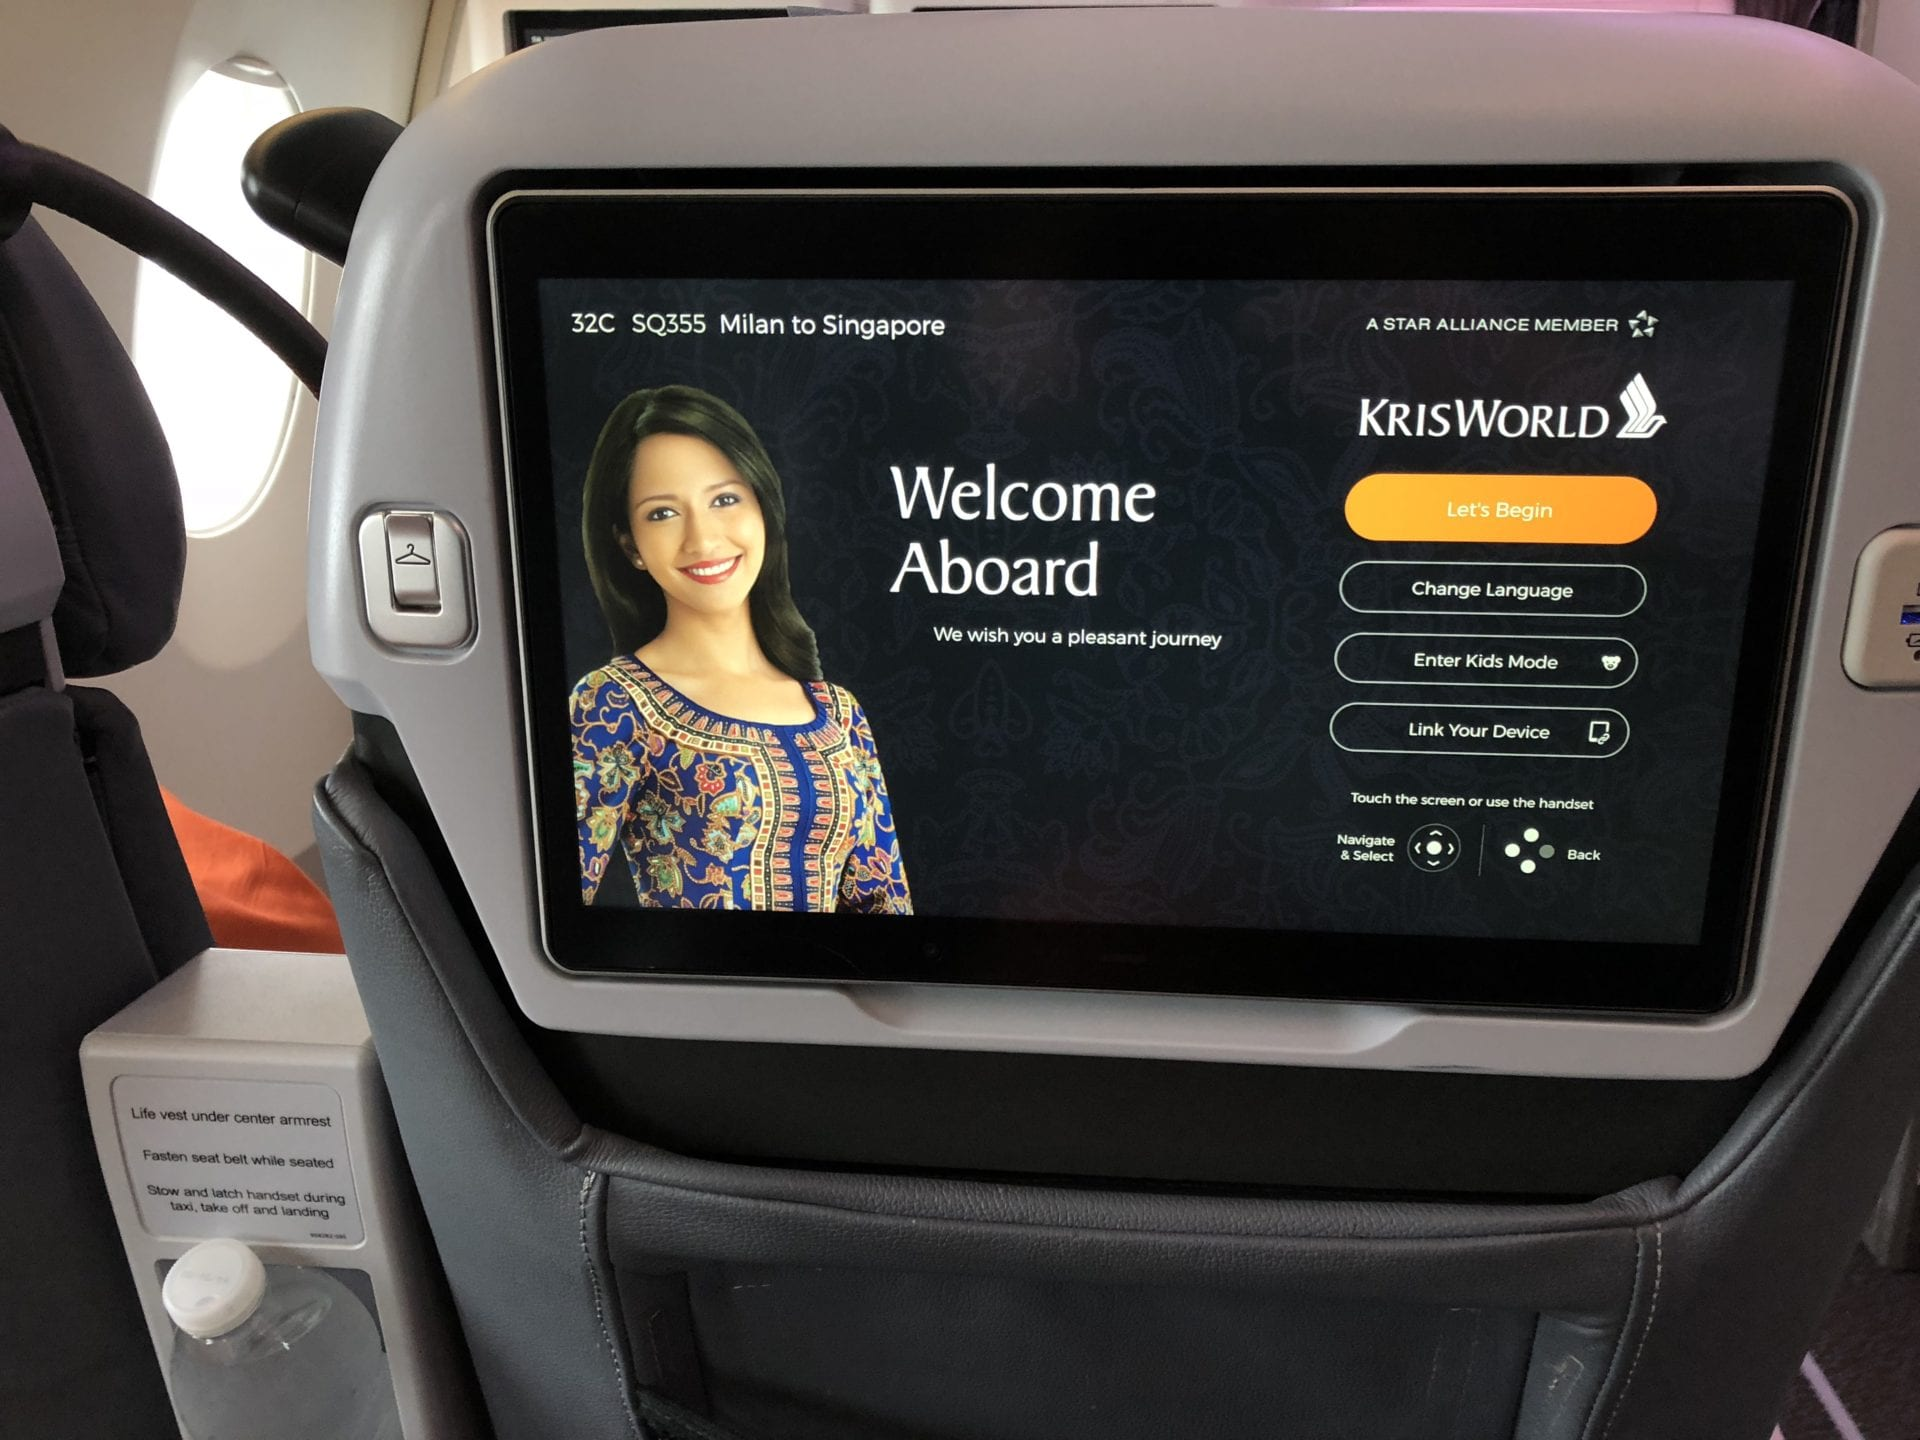 Singapore Airlines Premium Economy Class Inflight Entertainment